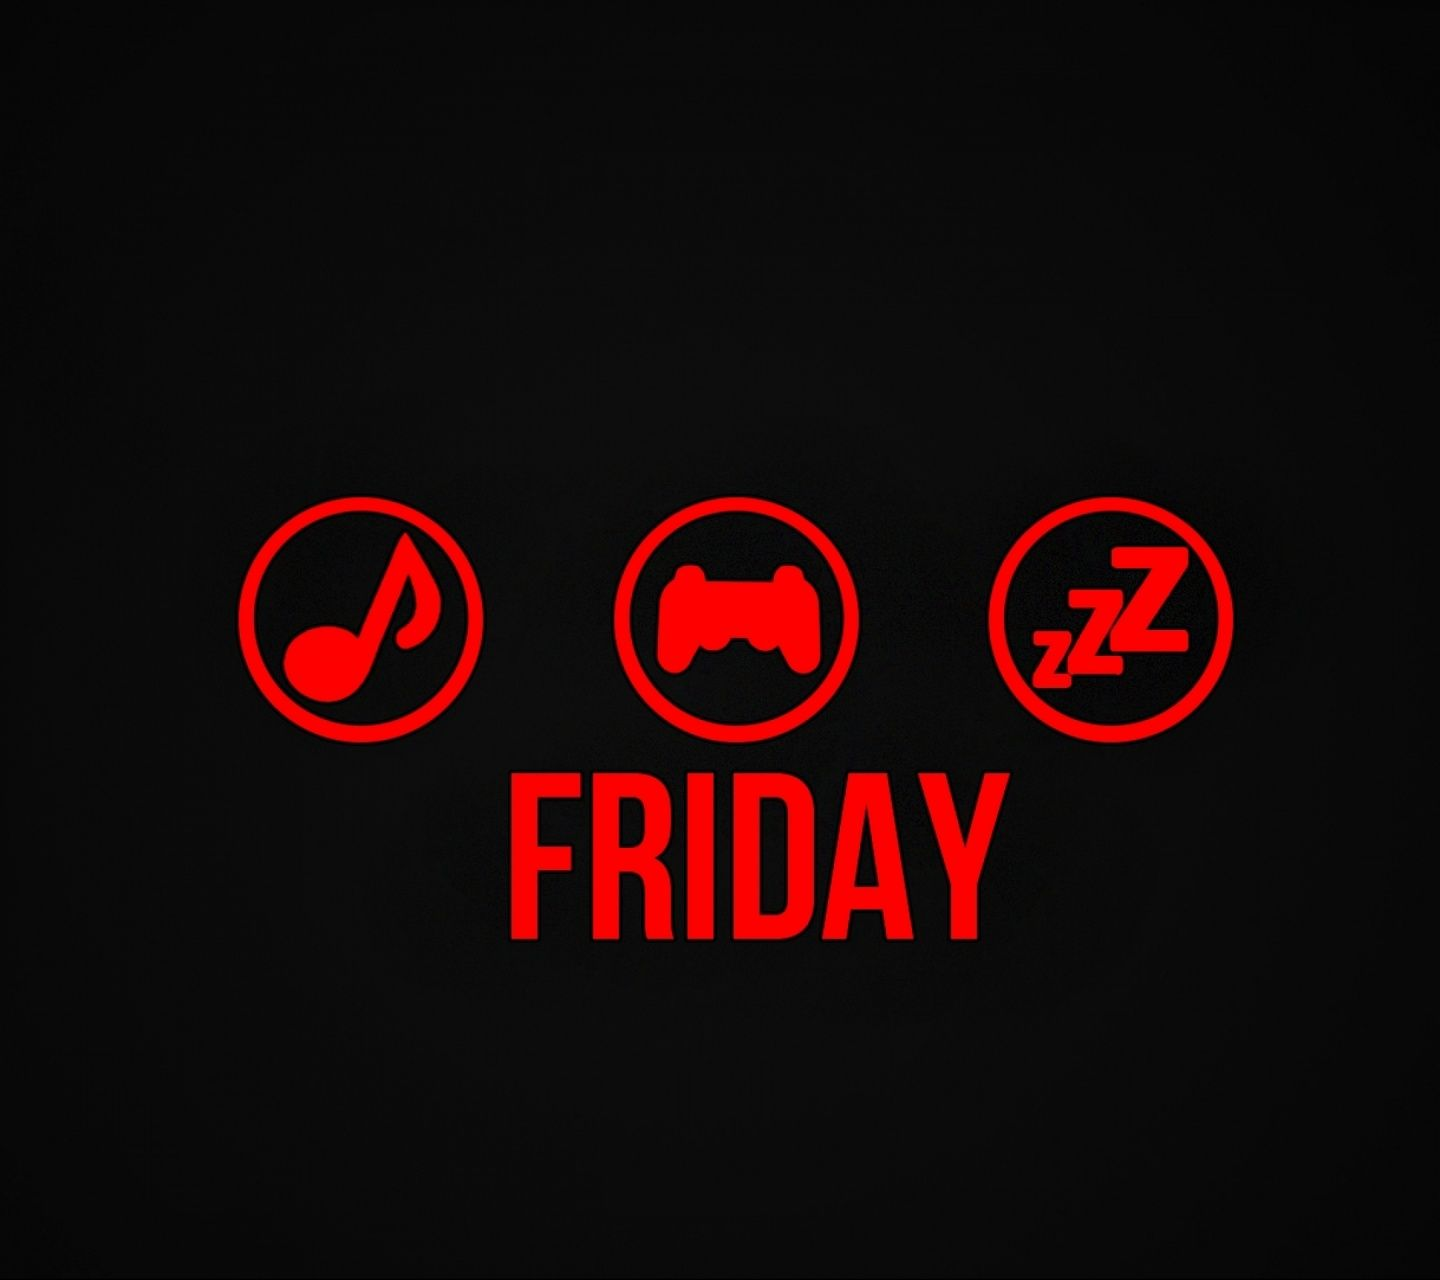 Download Friday1440x12801280x1440freehotmobile Phone Wallpapers